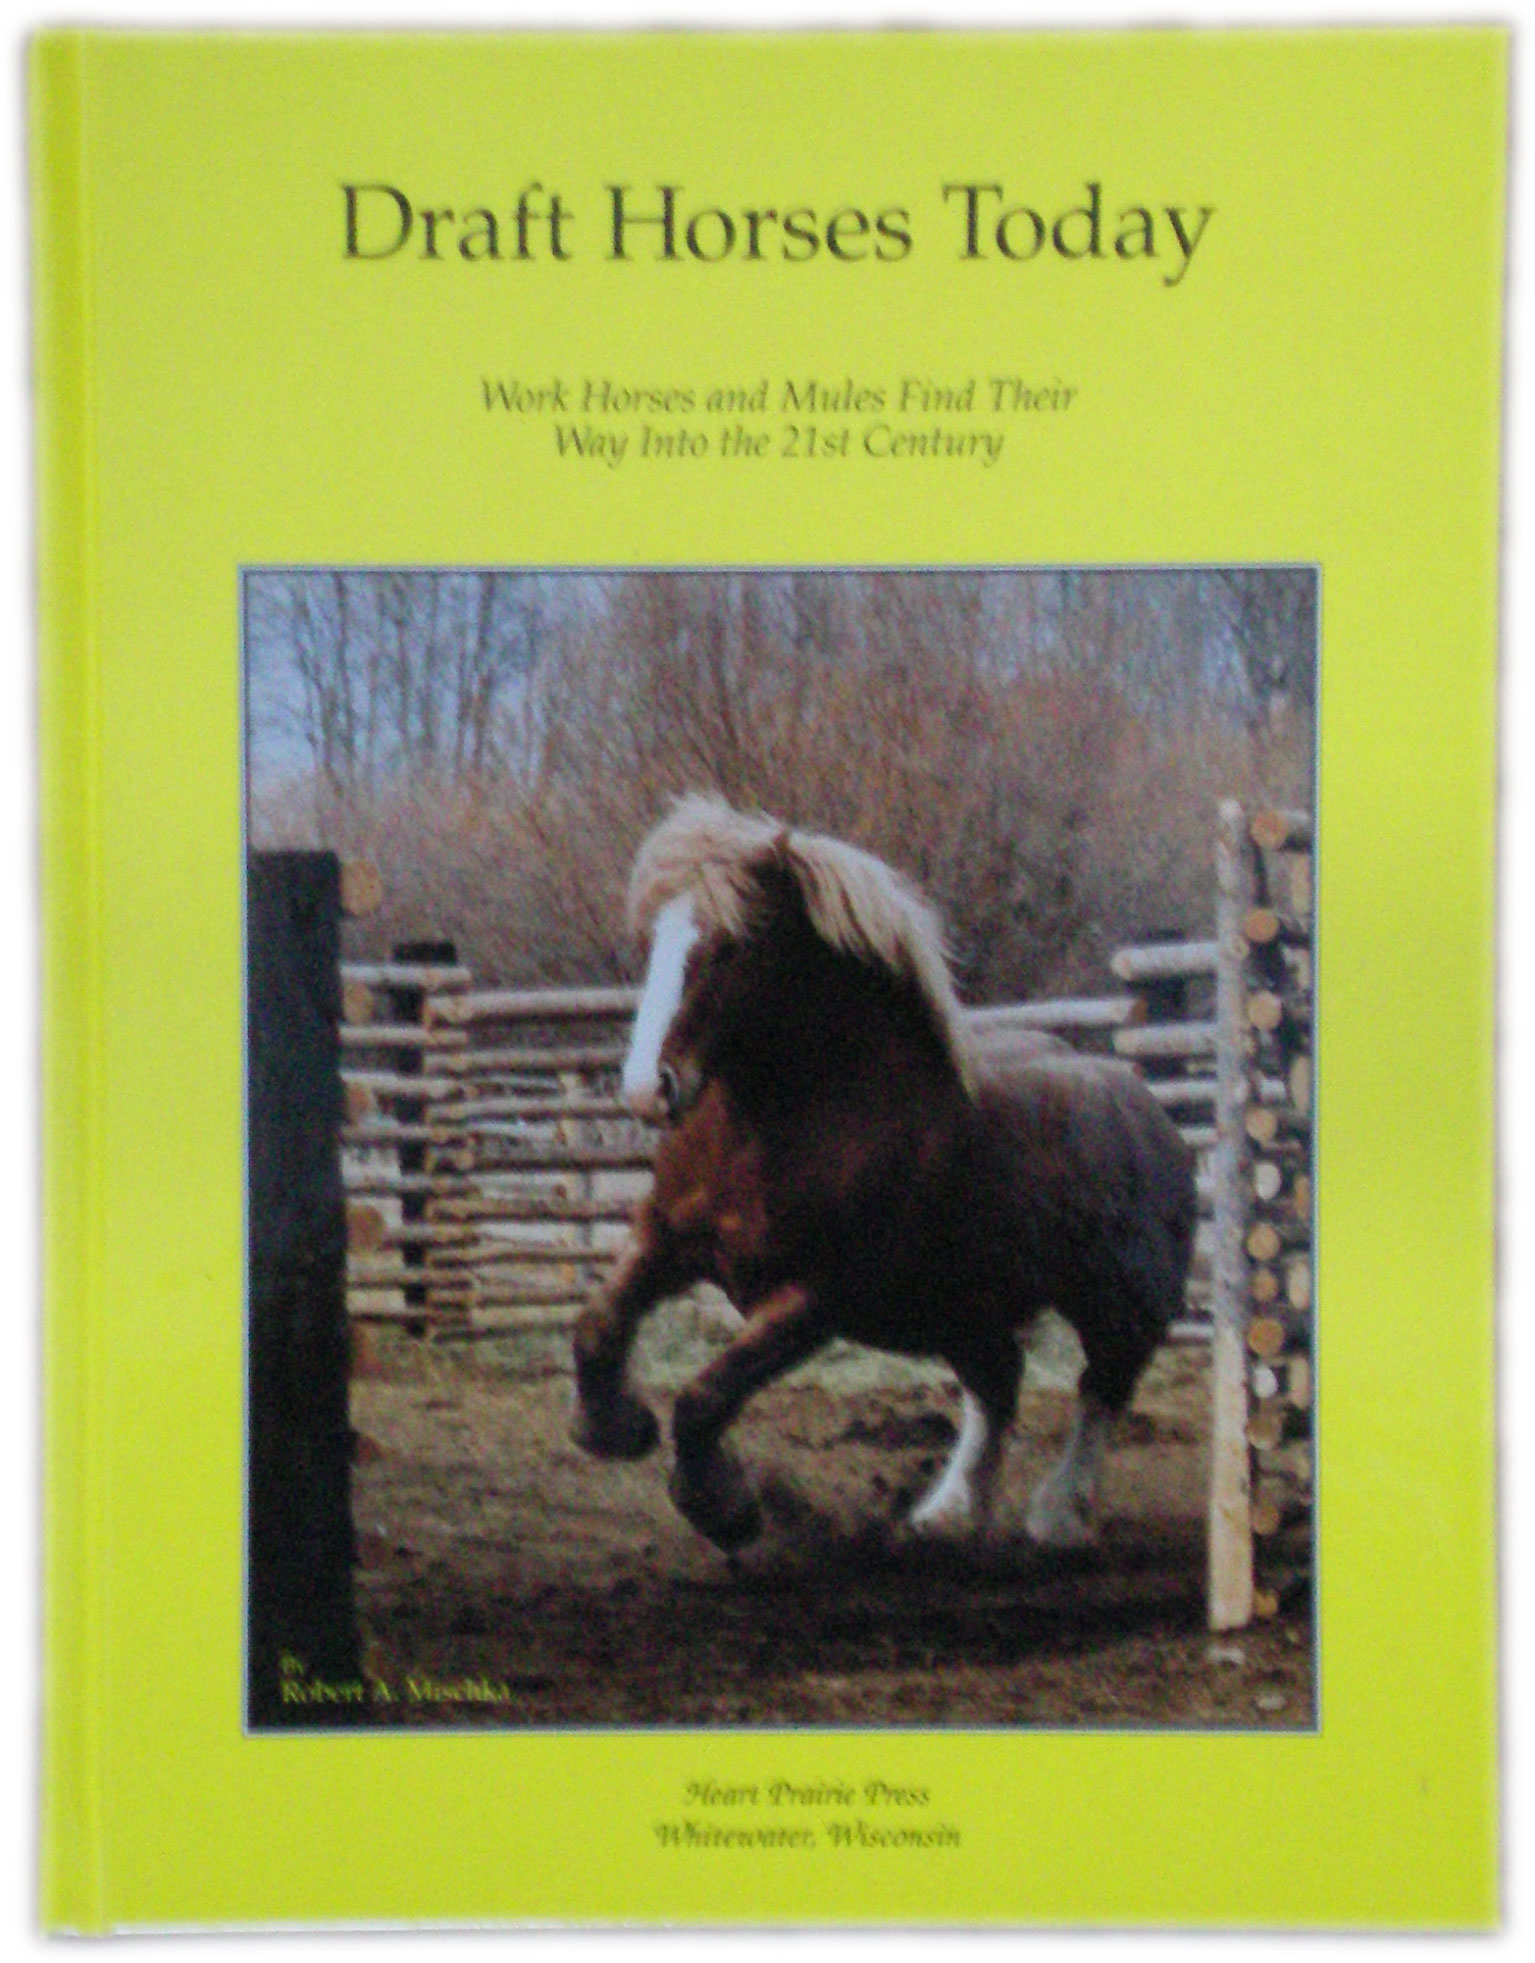 Draft Horses Today